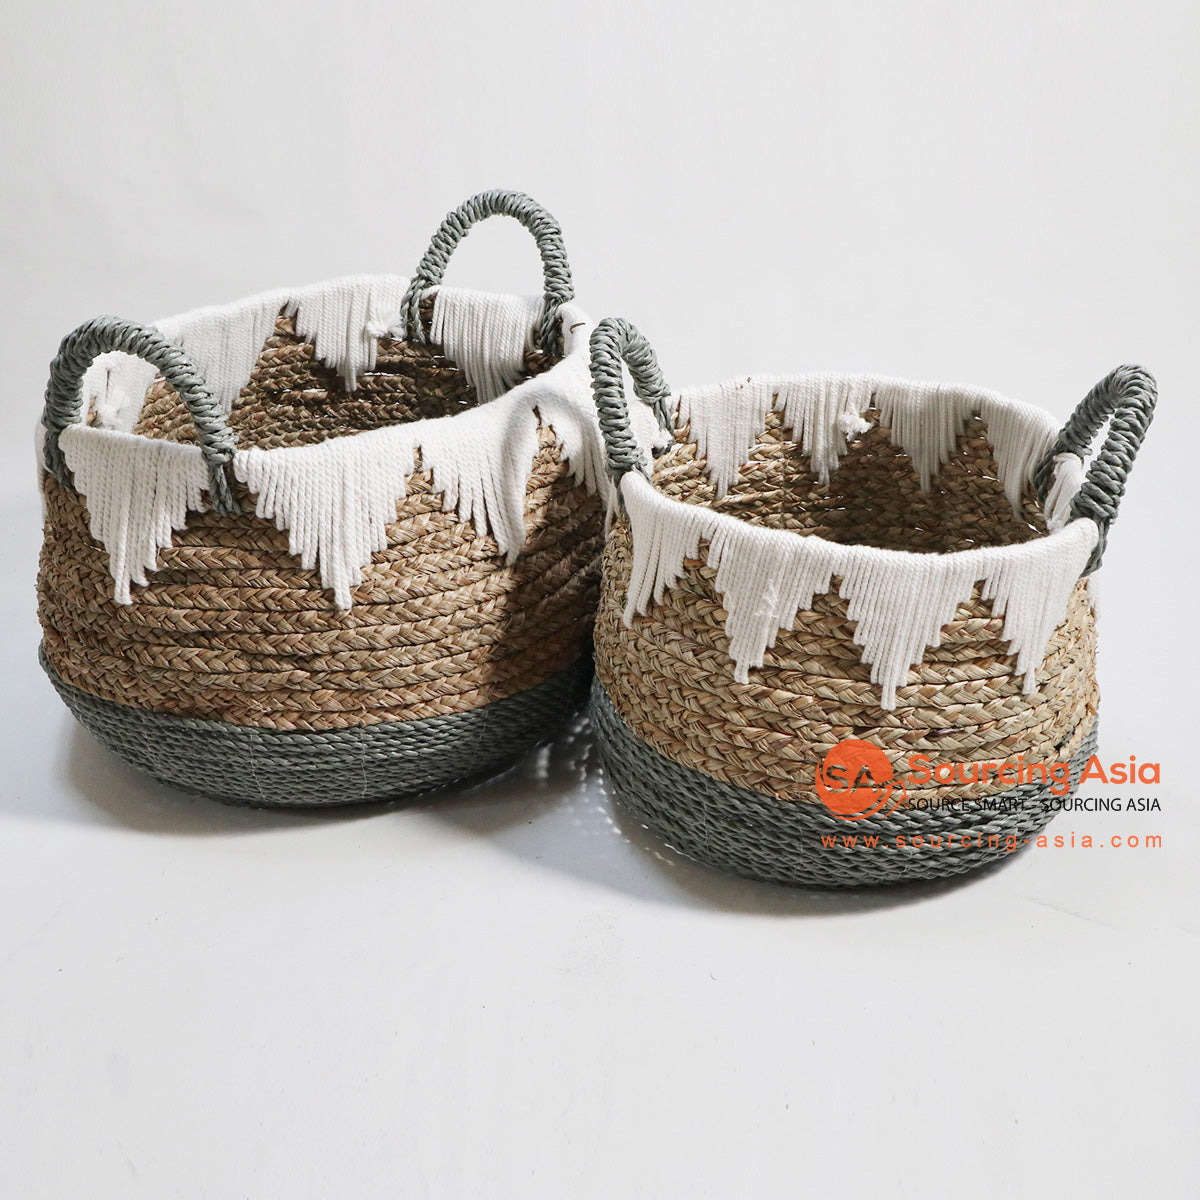 HBSC133 SET OF 2 MENDONG AND SEA GRASS BASKETS WITH MACRAME